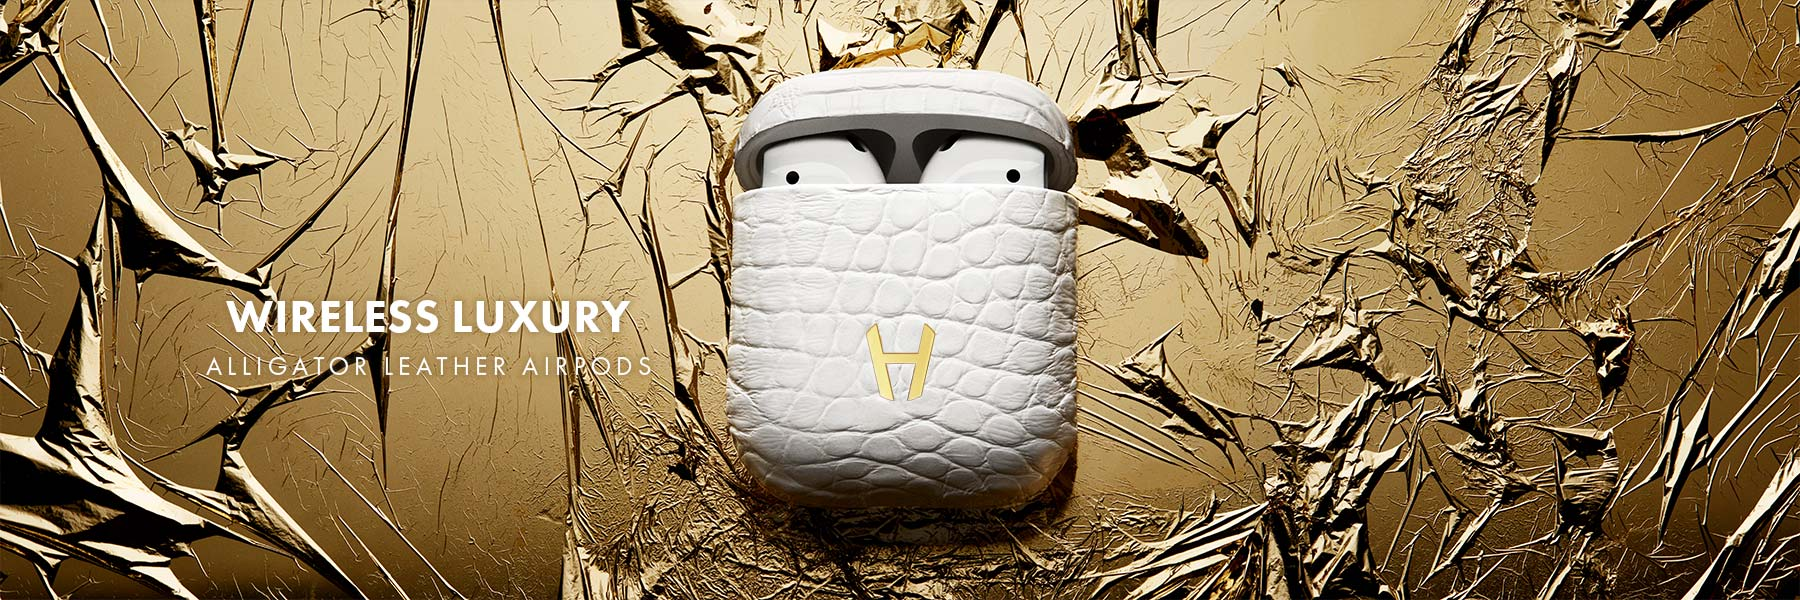 Luxury Custom Alligator White AirPods by Hadoro Paris